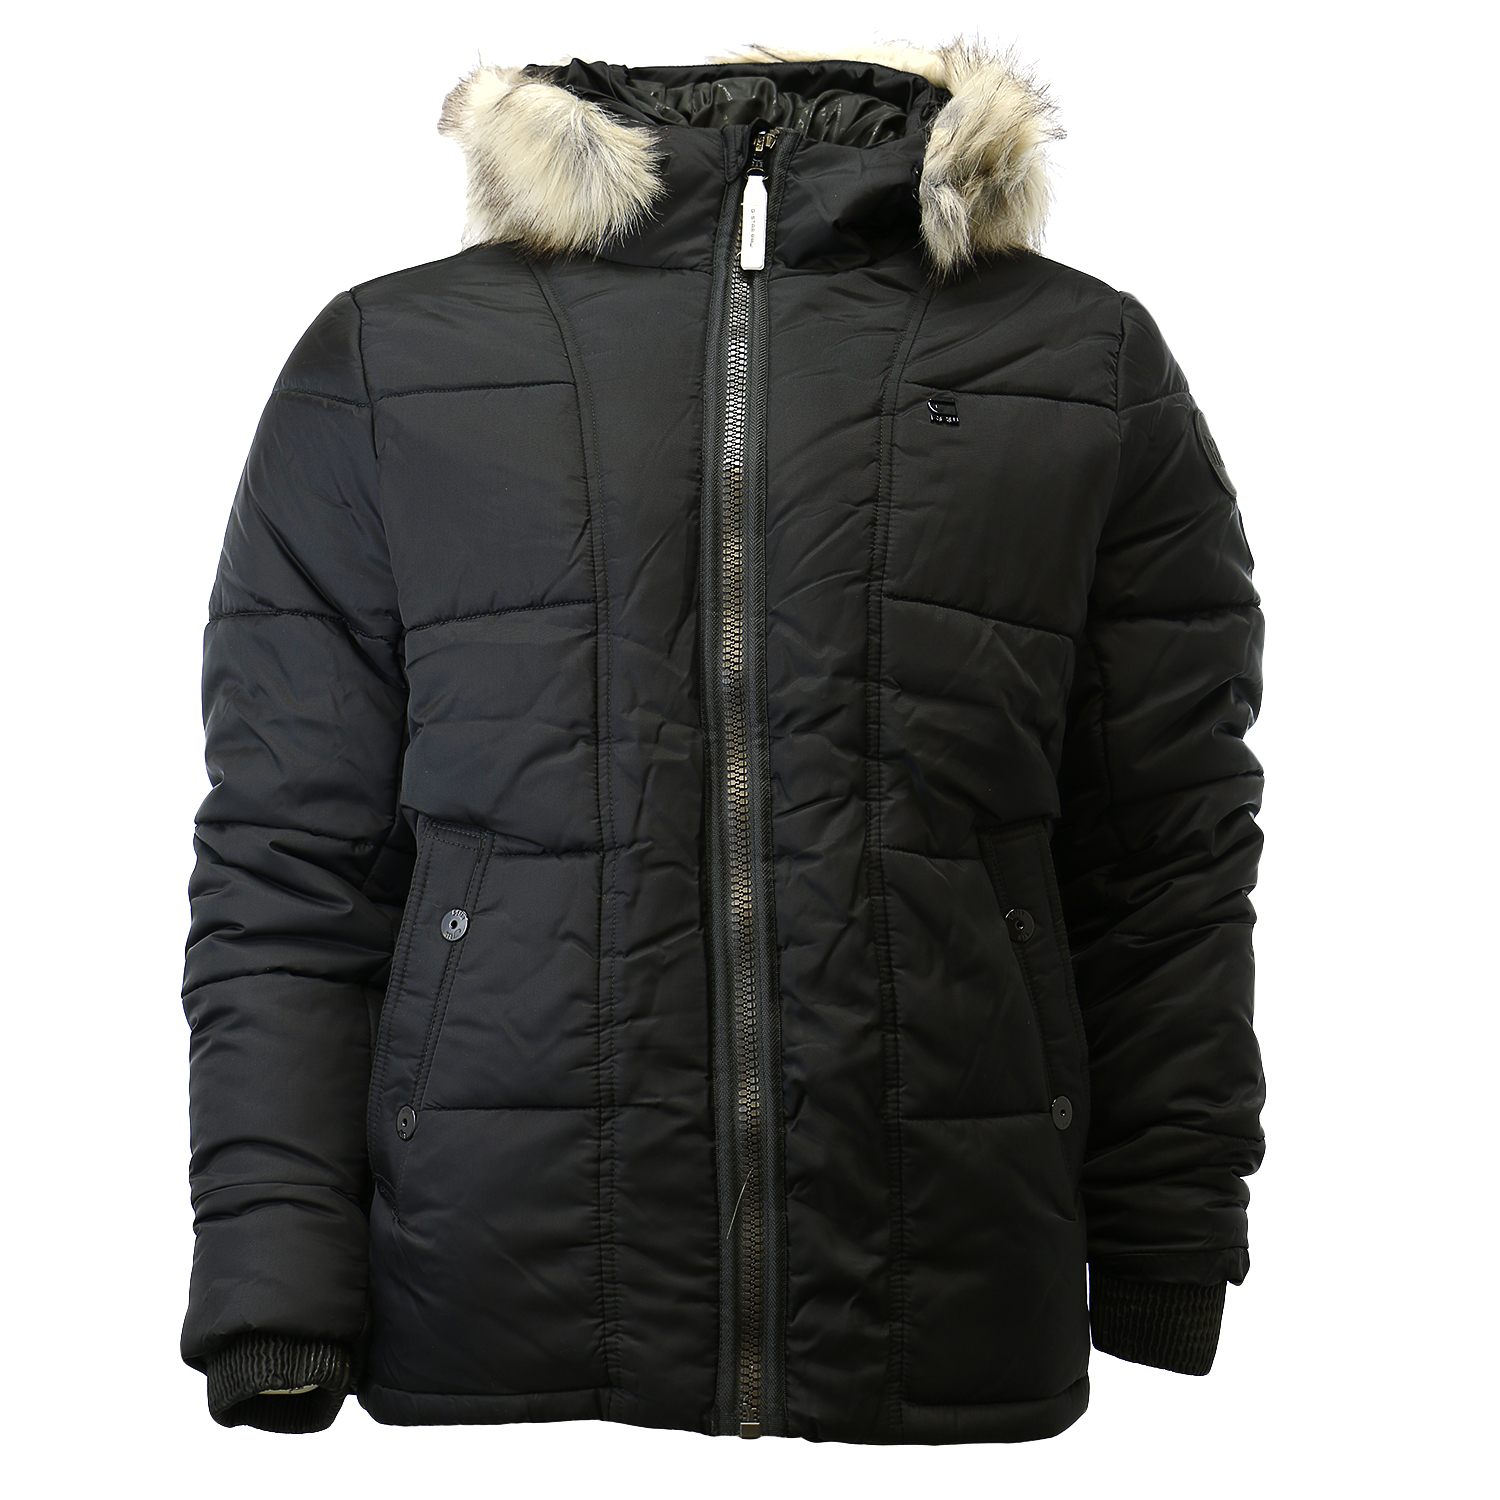 G-Star Whistler Hooded Fur Insulated Winter Jacket Mens by G-Star